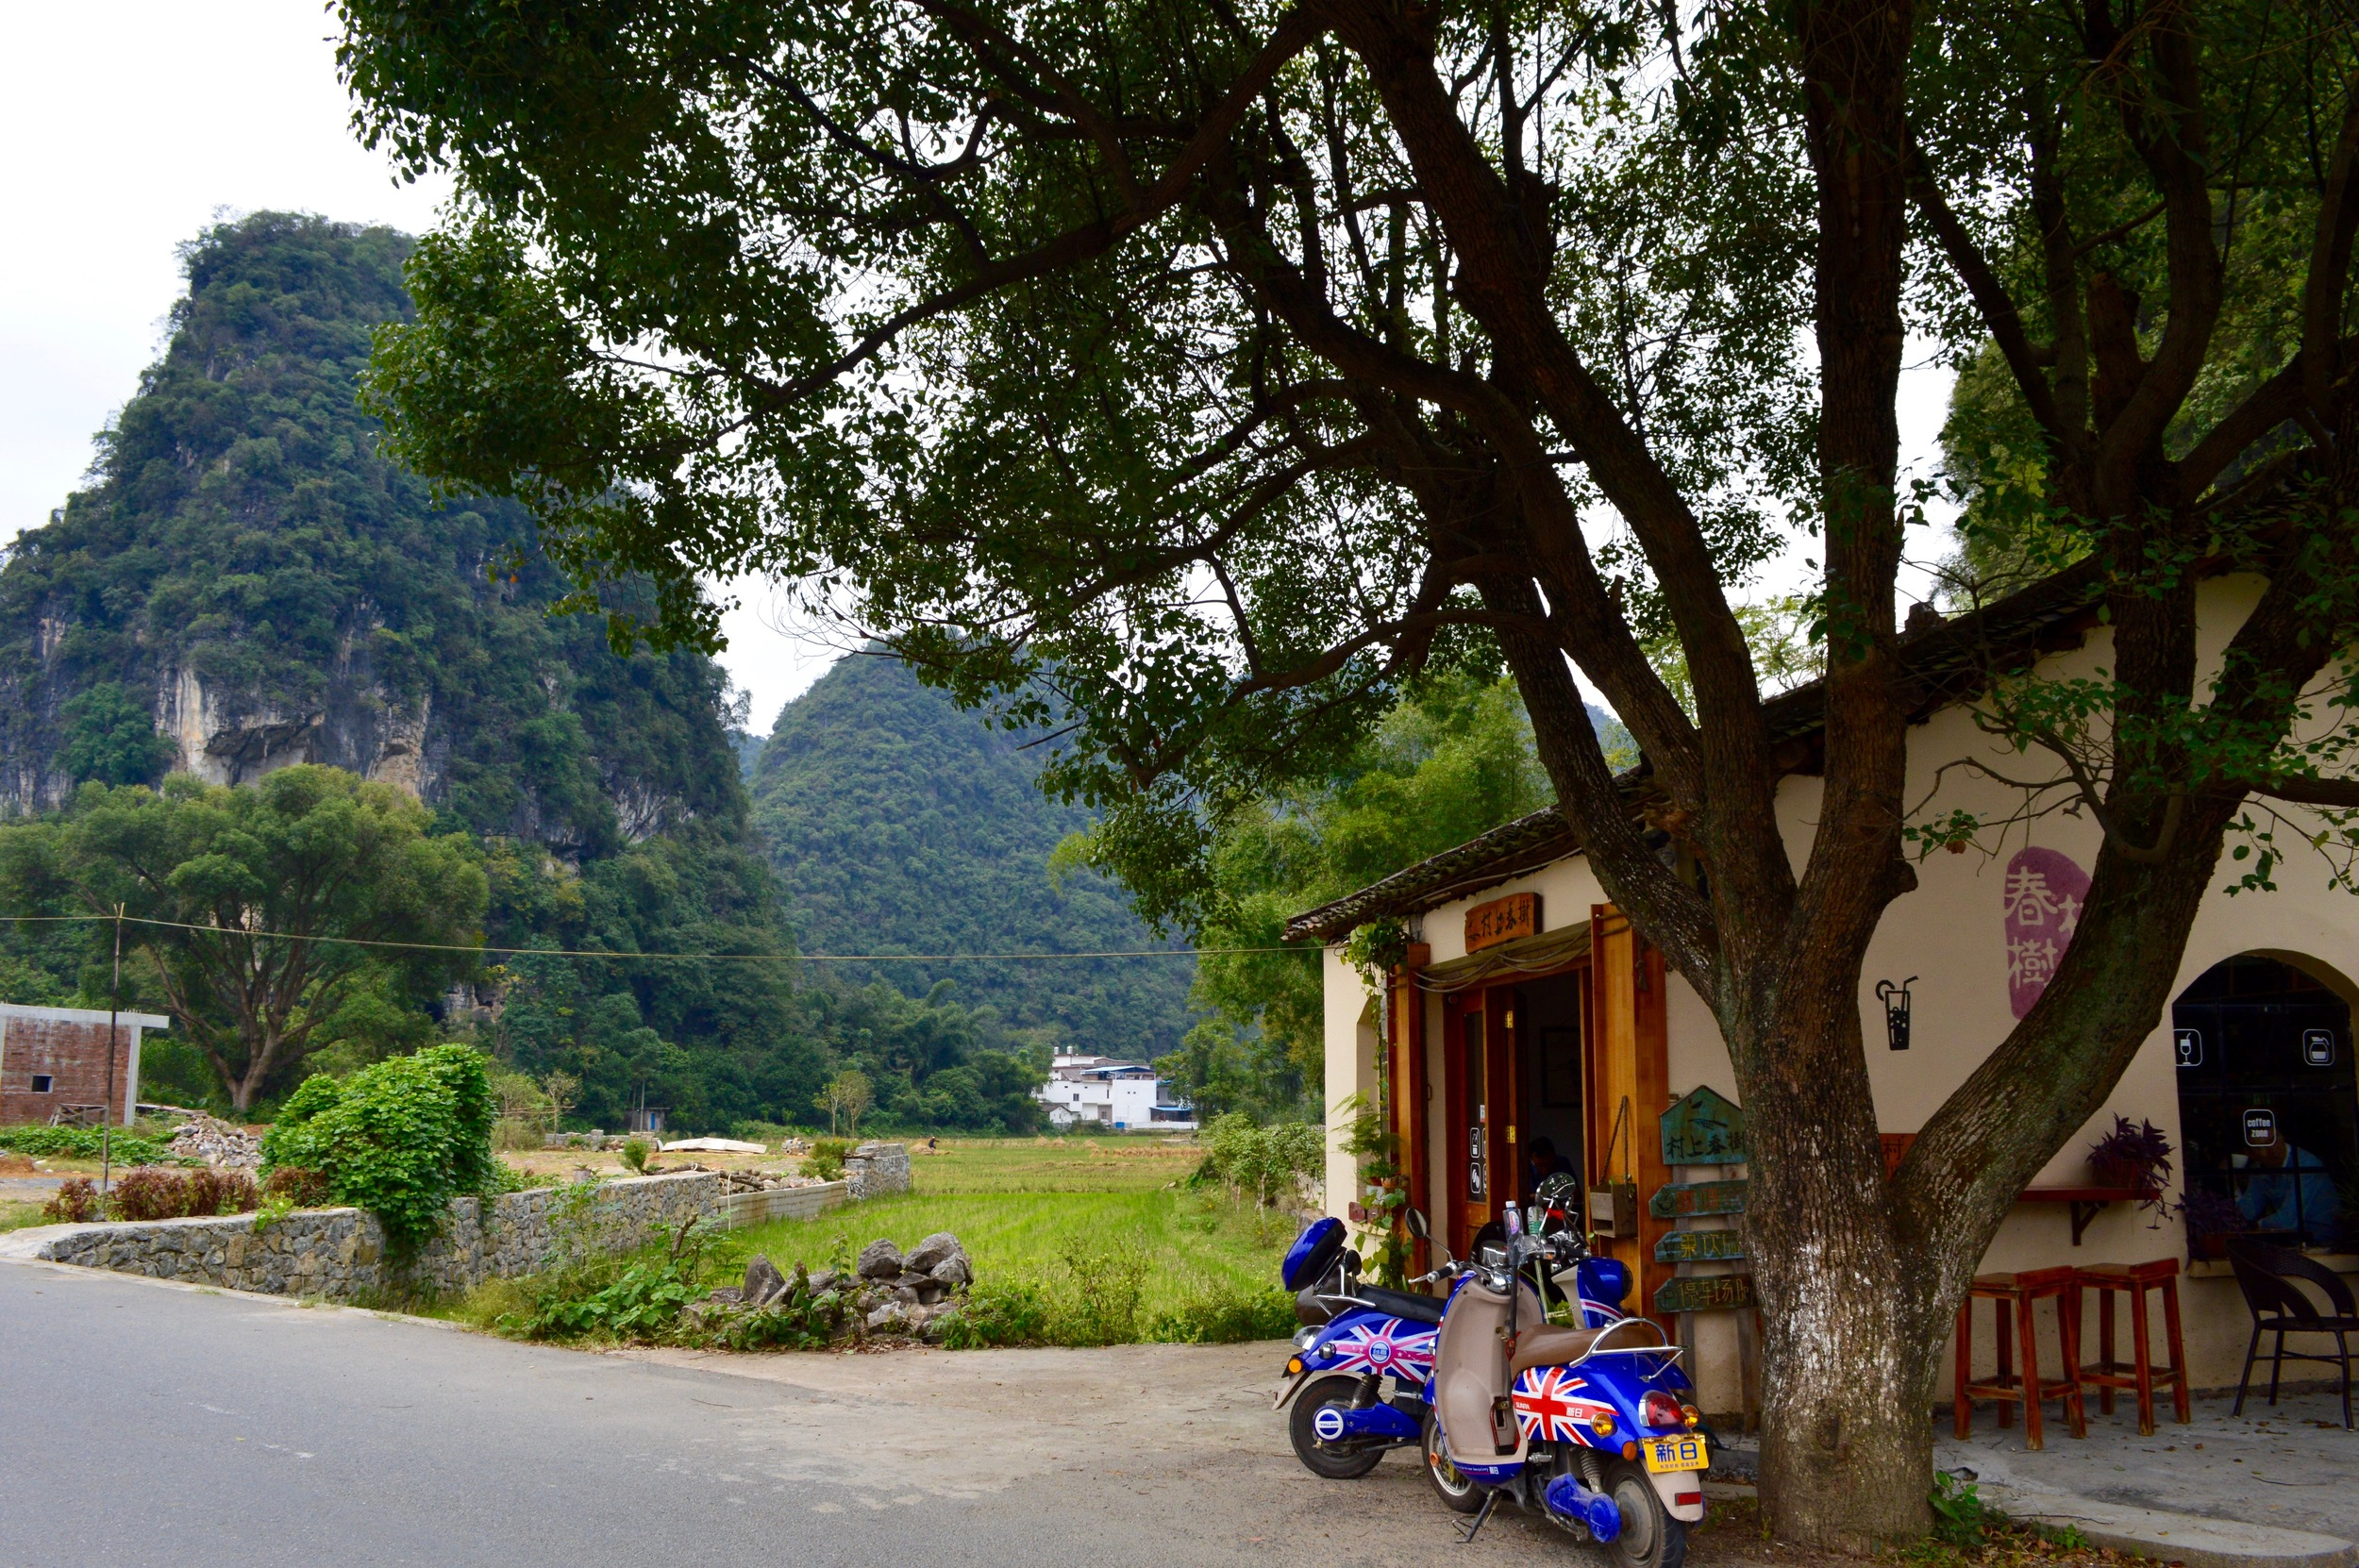 New favorite coffee shop—in between a mountain and a farm in Yangshuo County.